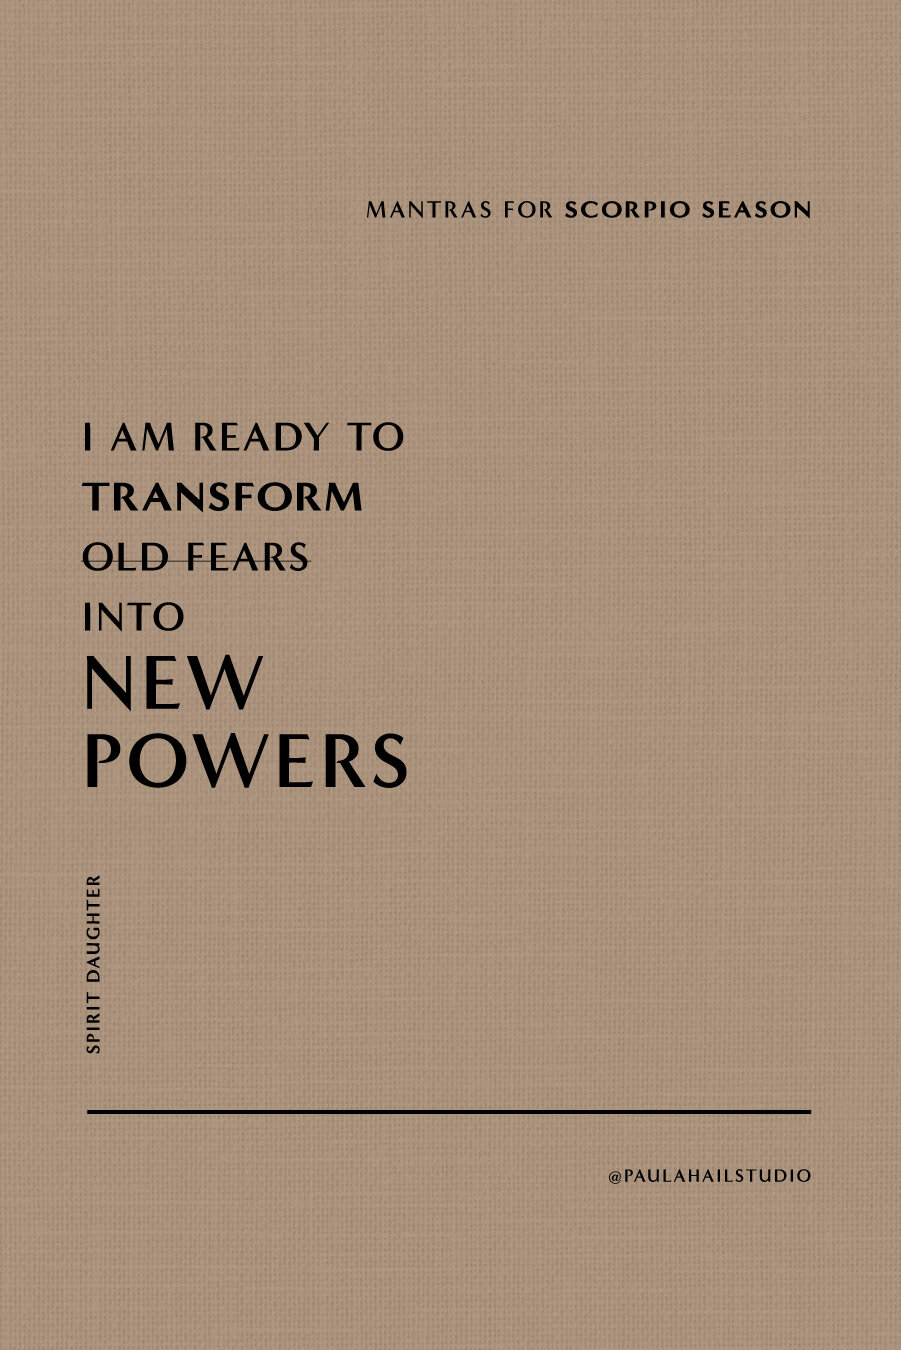 Are you ready to transform old fears into new powers? — Paula Hail Studio